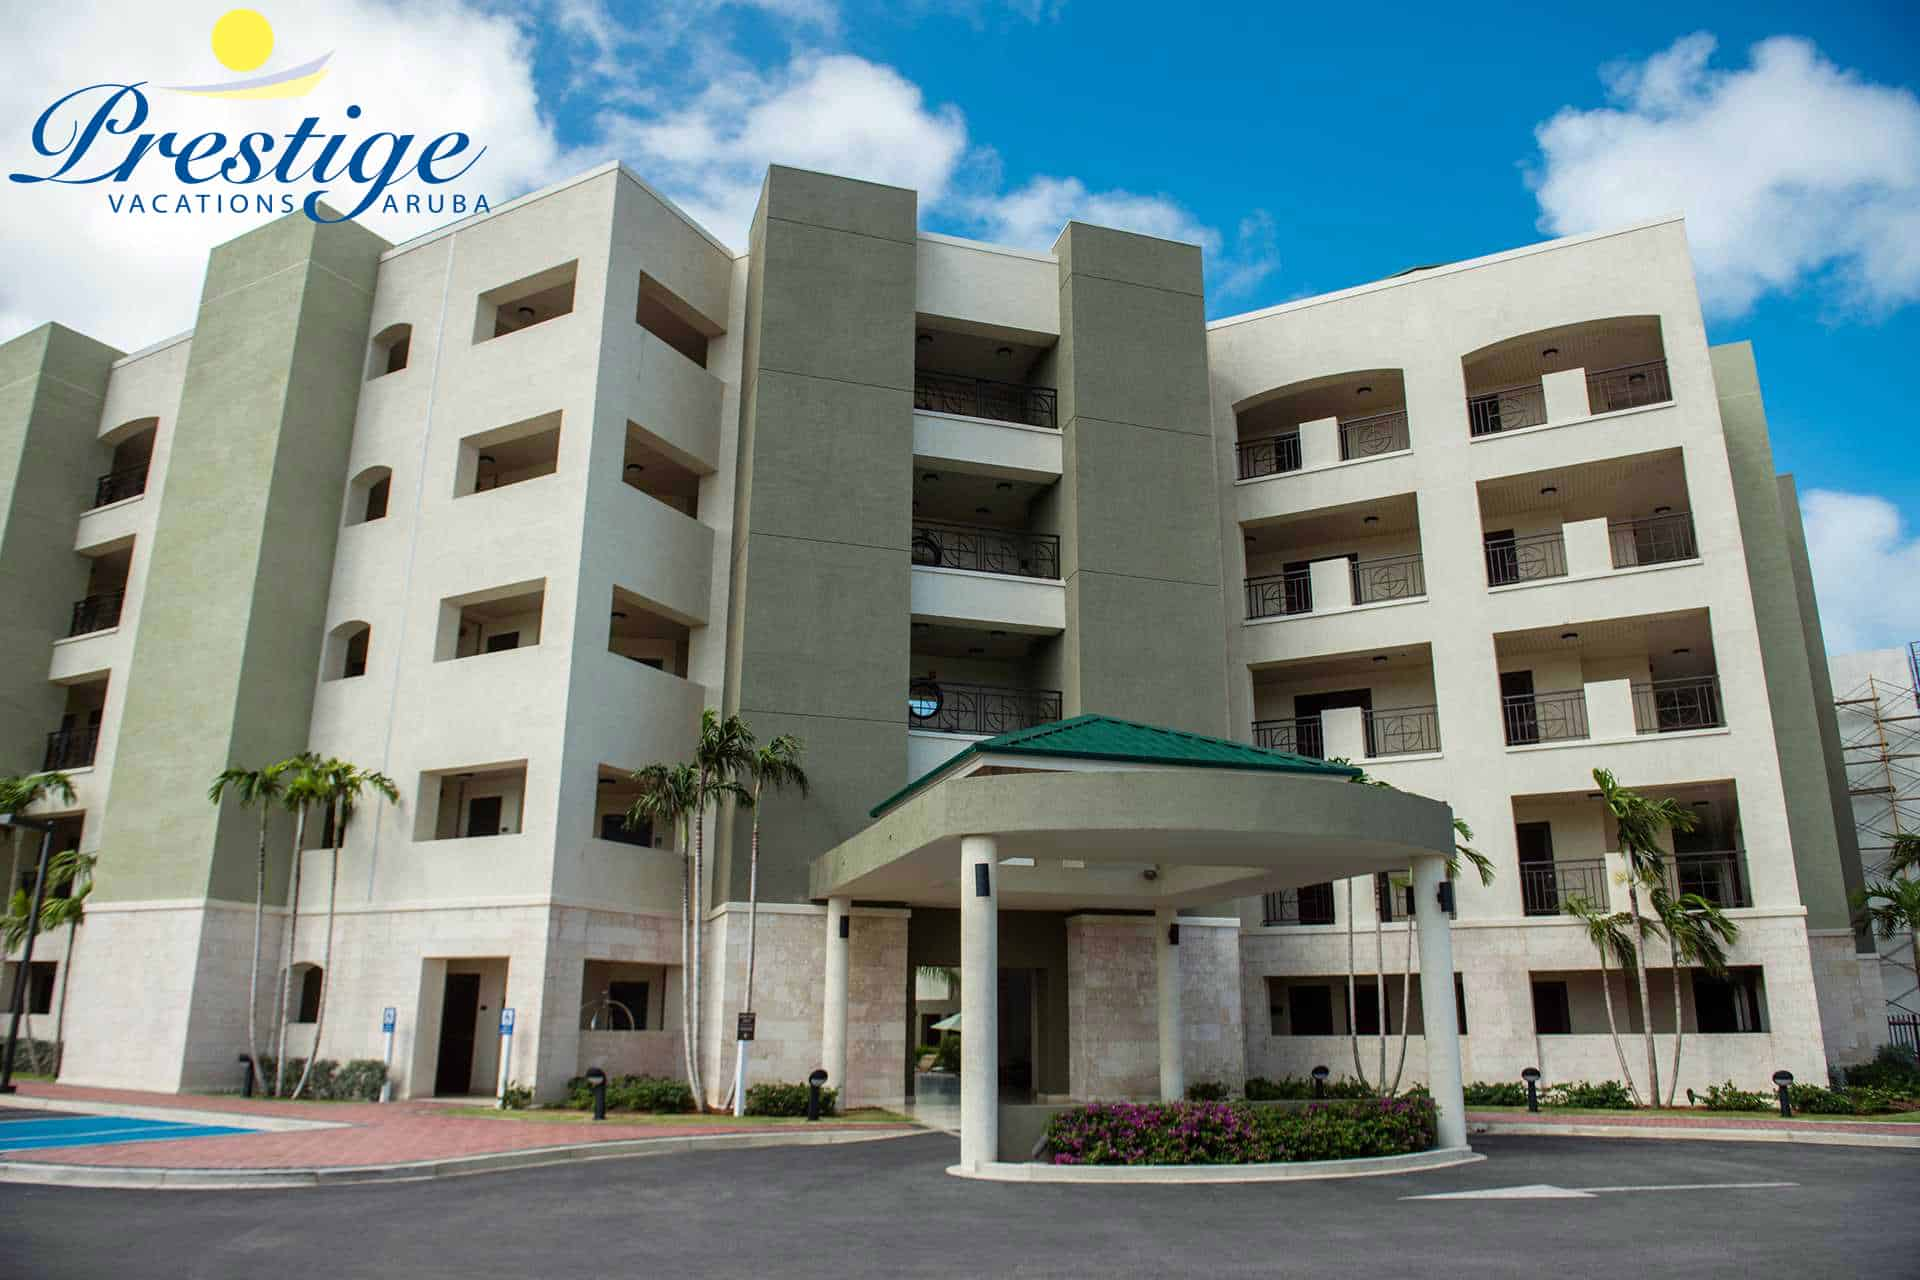 Welcome to the Palm Aruba Condos, the BEST Aruba vacation rental resort!